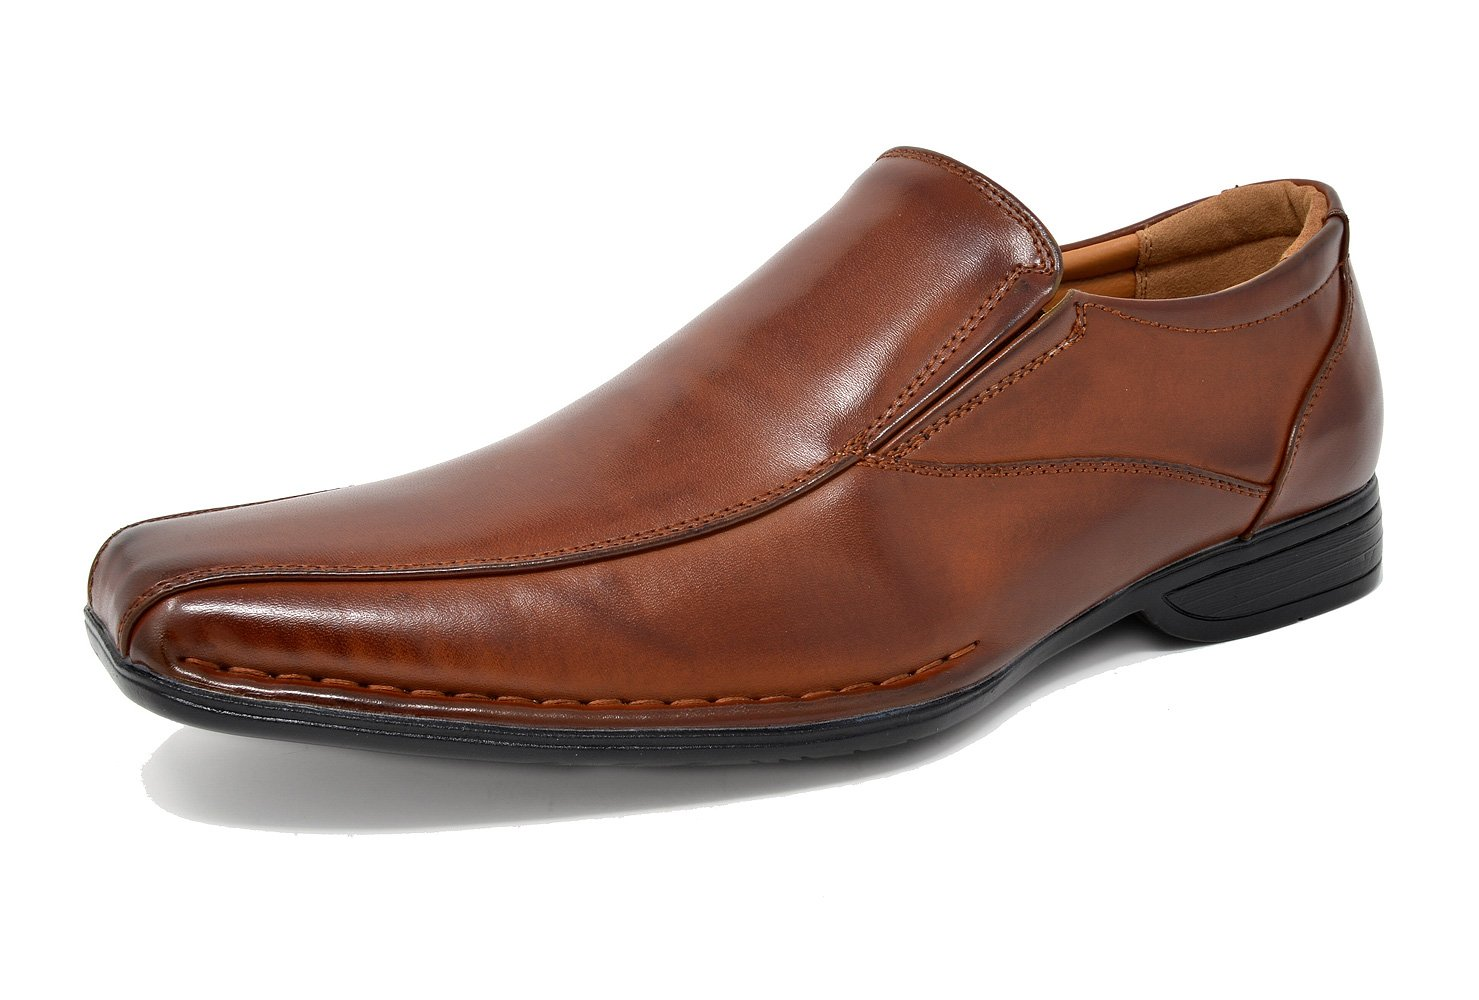 Bruno Marc Men's Giorgio-1 Brown Leather Lined Dress Loafers Shoes - 11 M US